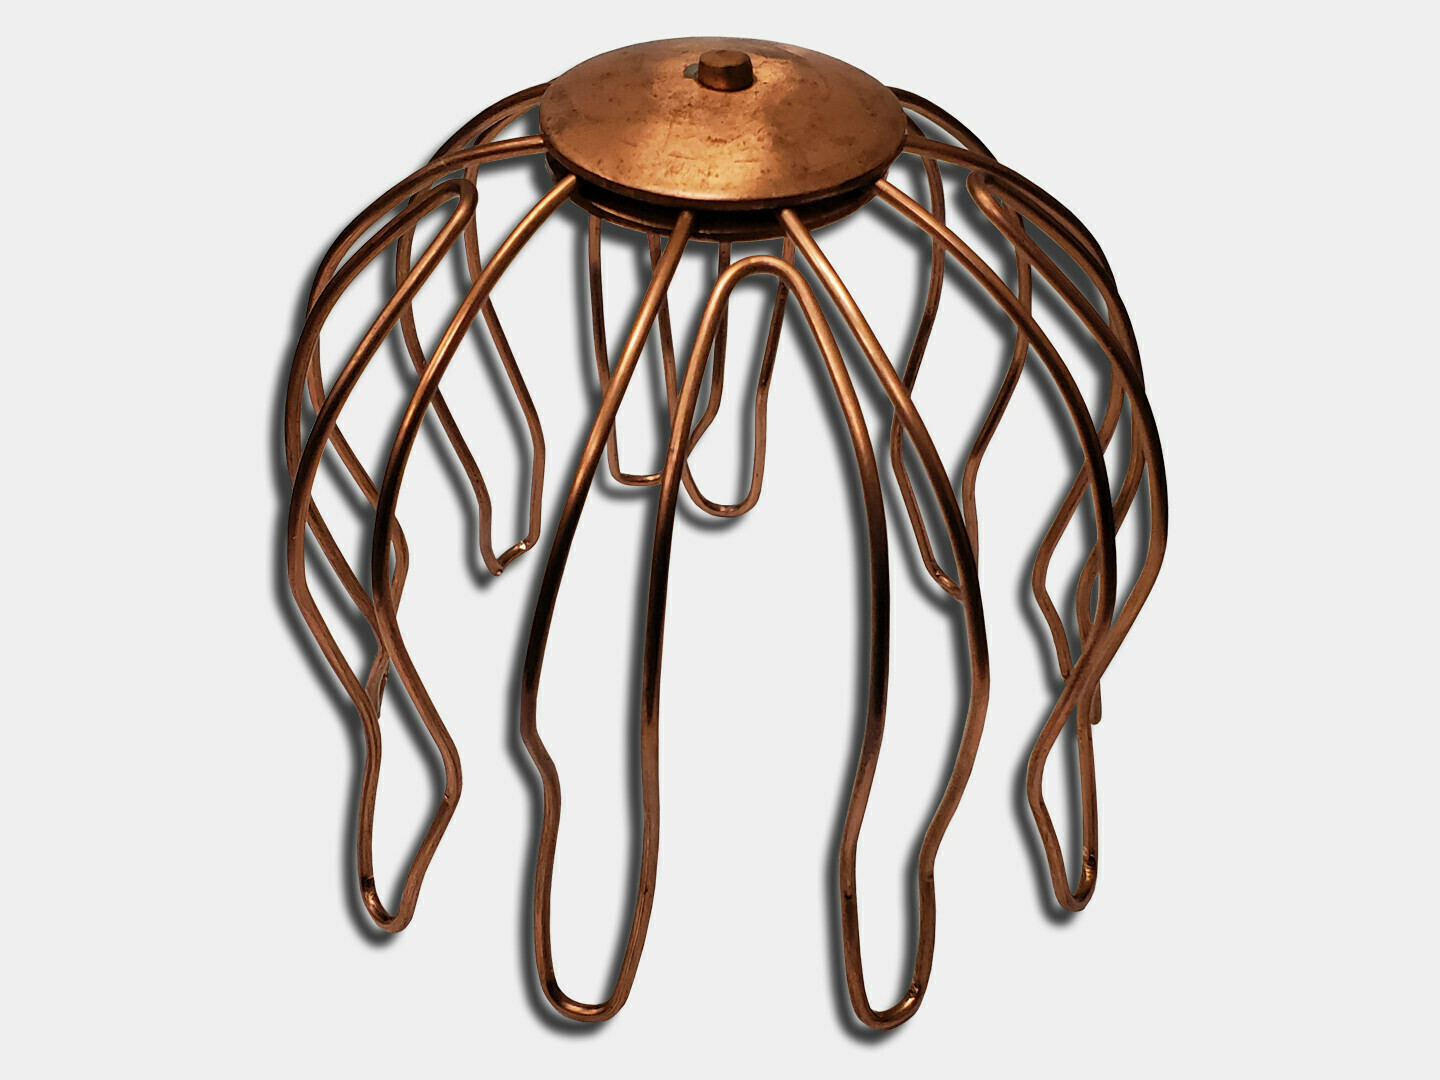 Copper Heavy Duty Wire Strainer